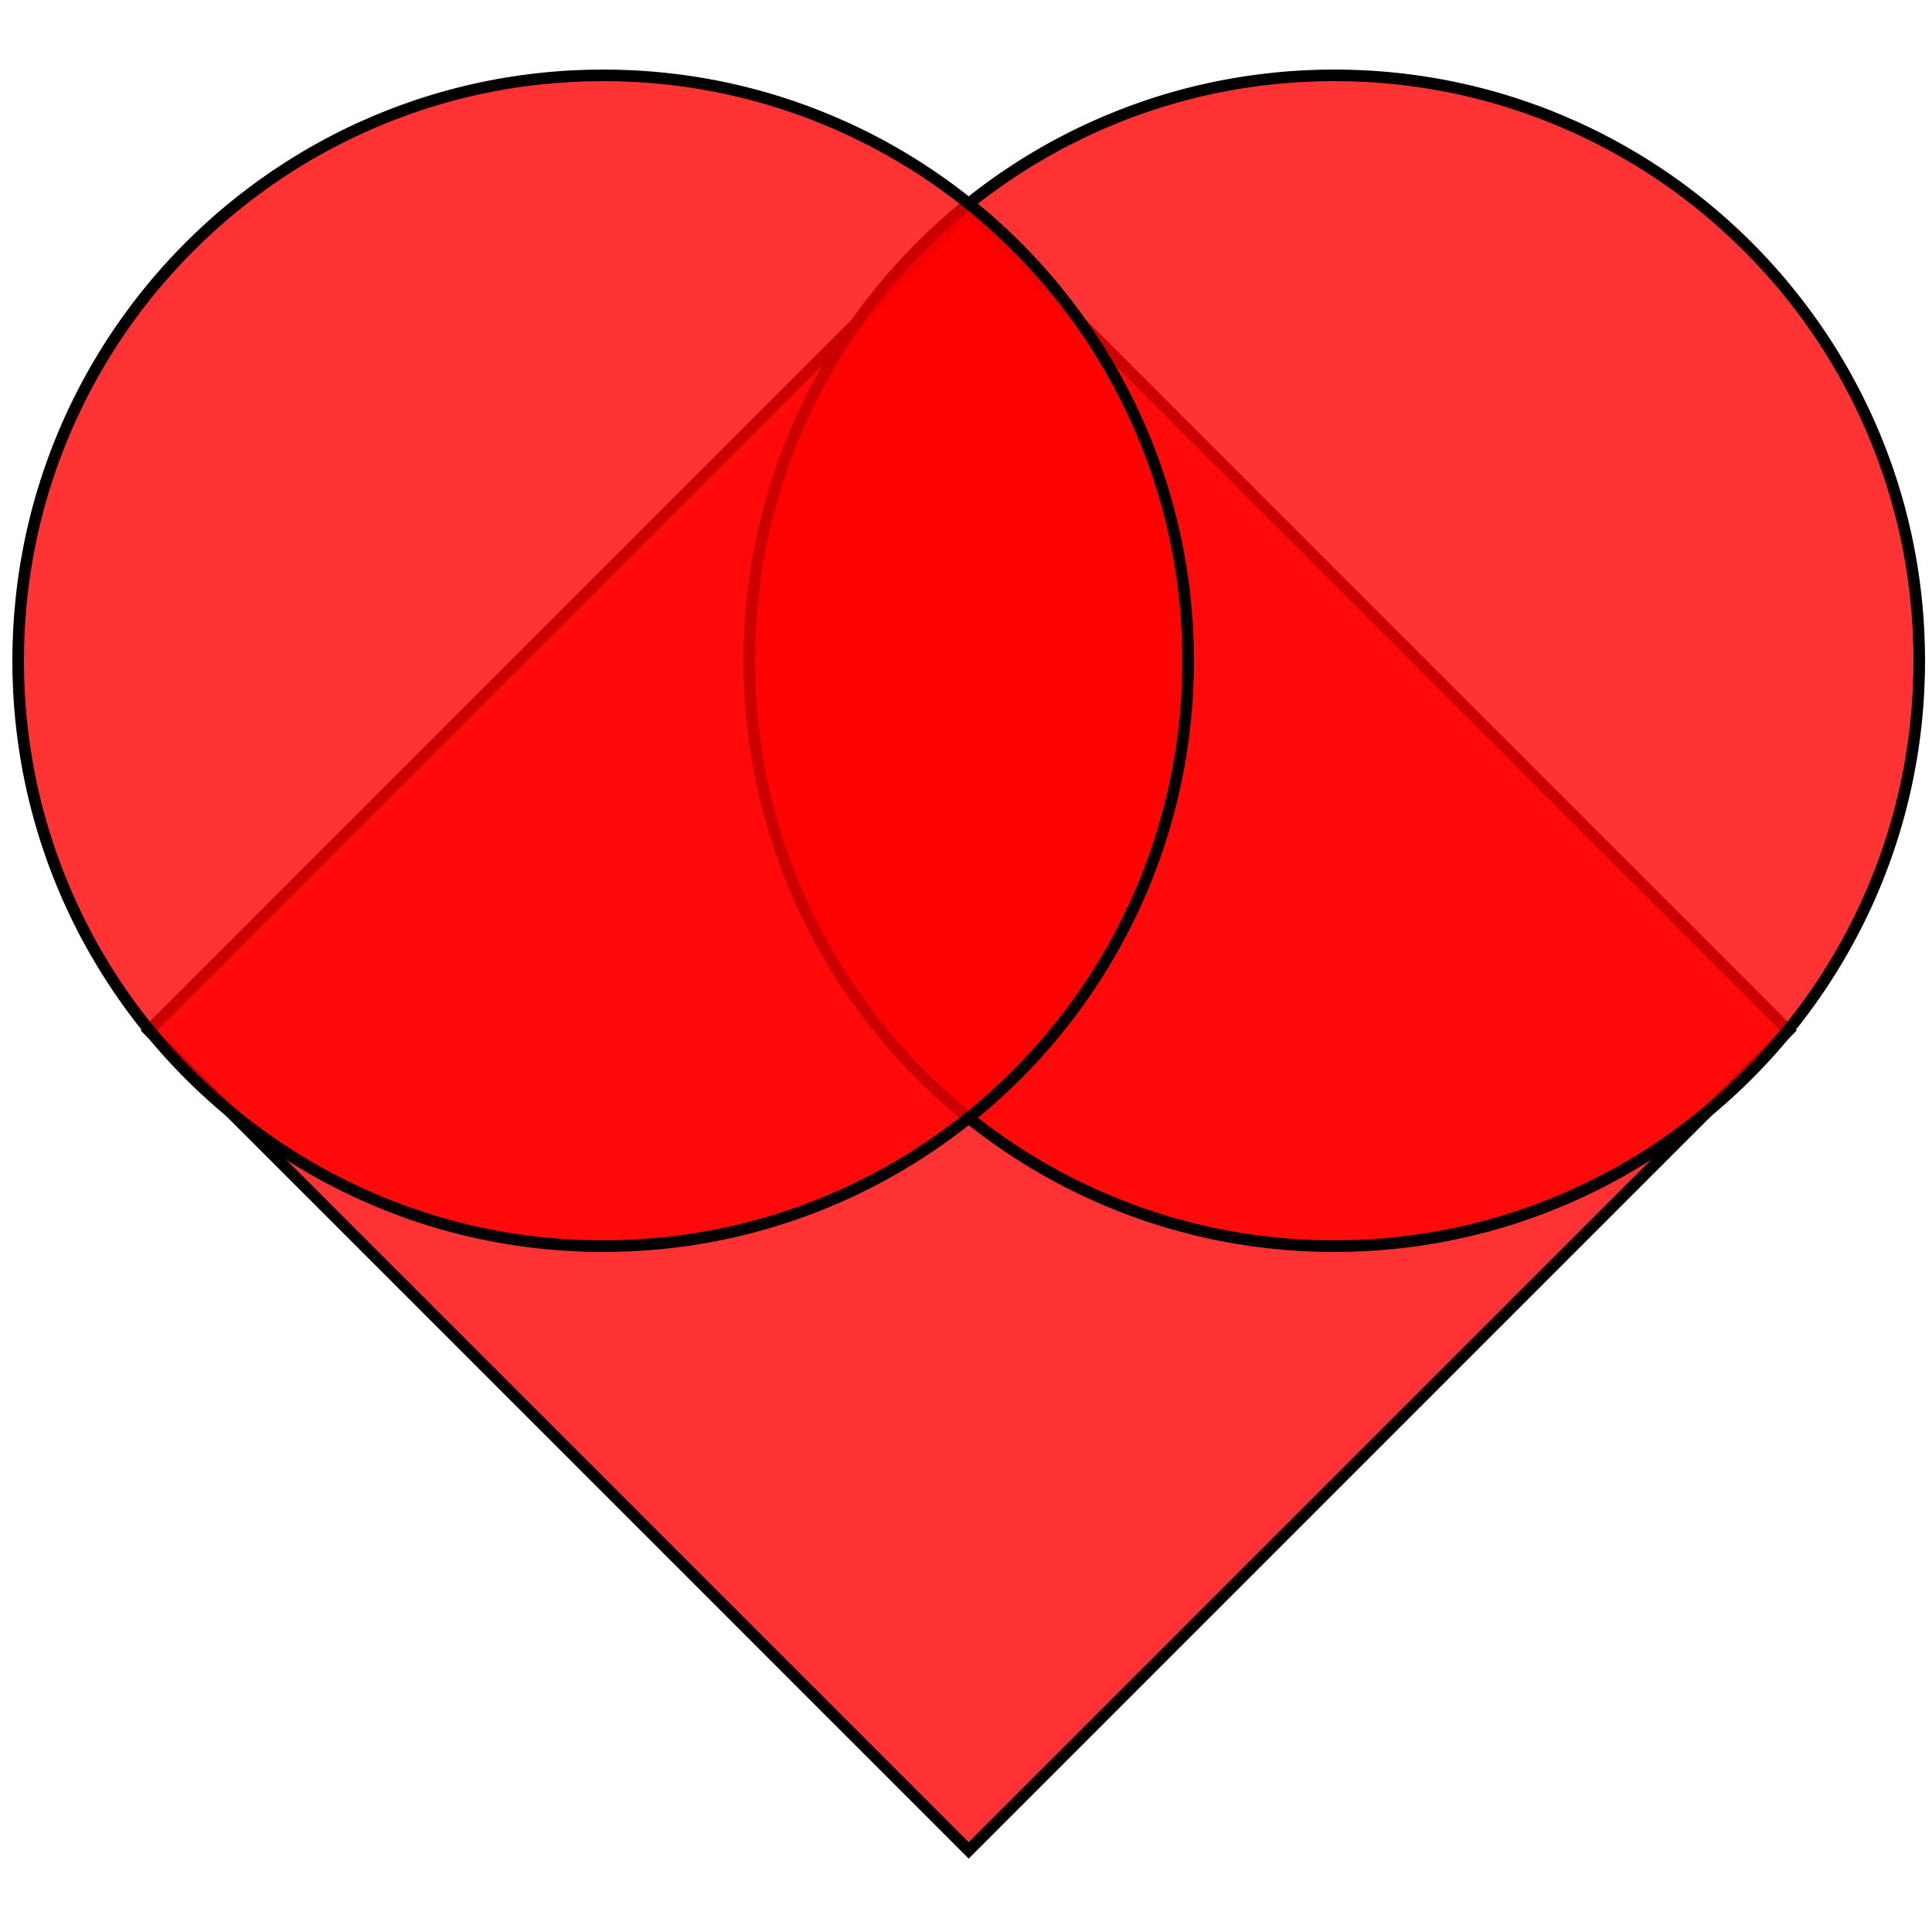 How to Make a Heart Shape - CSS-Tricks